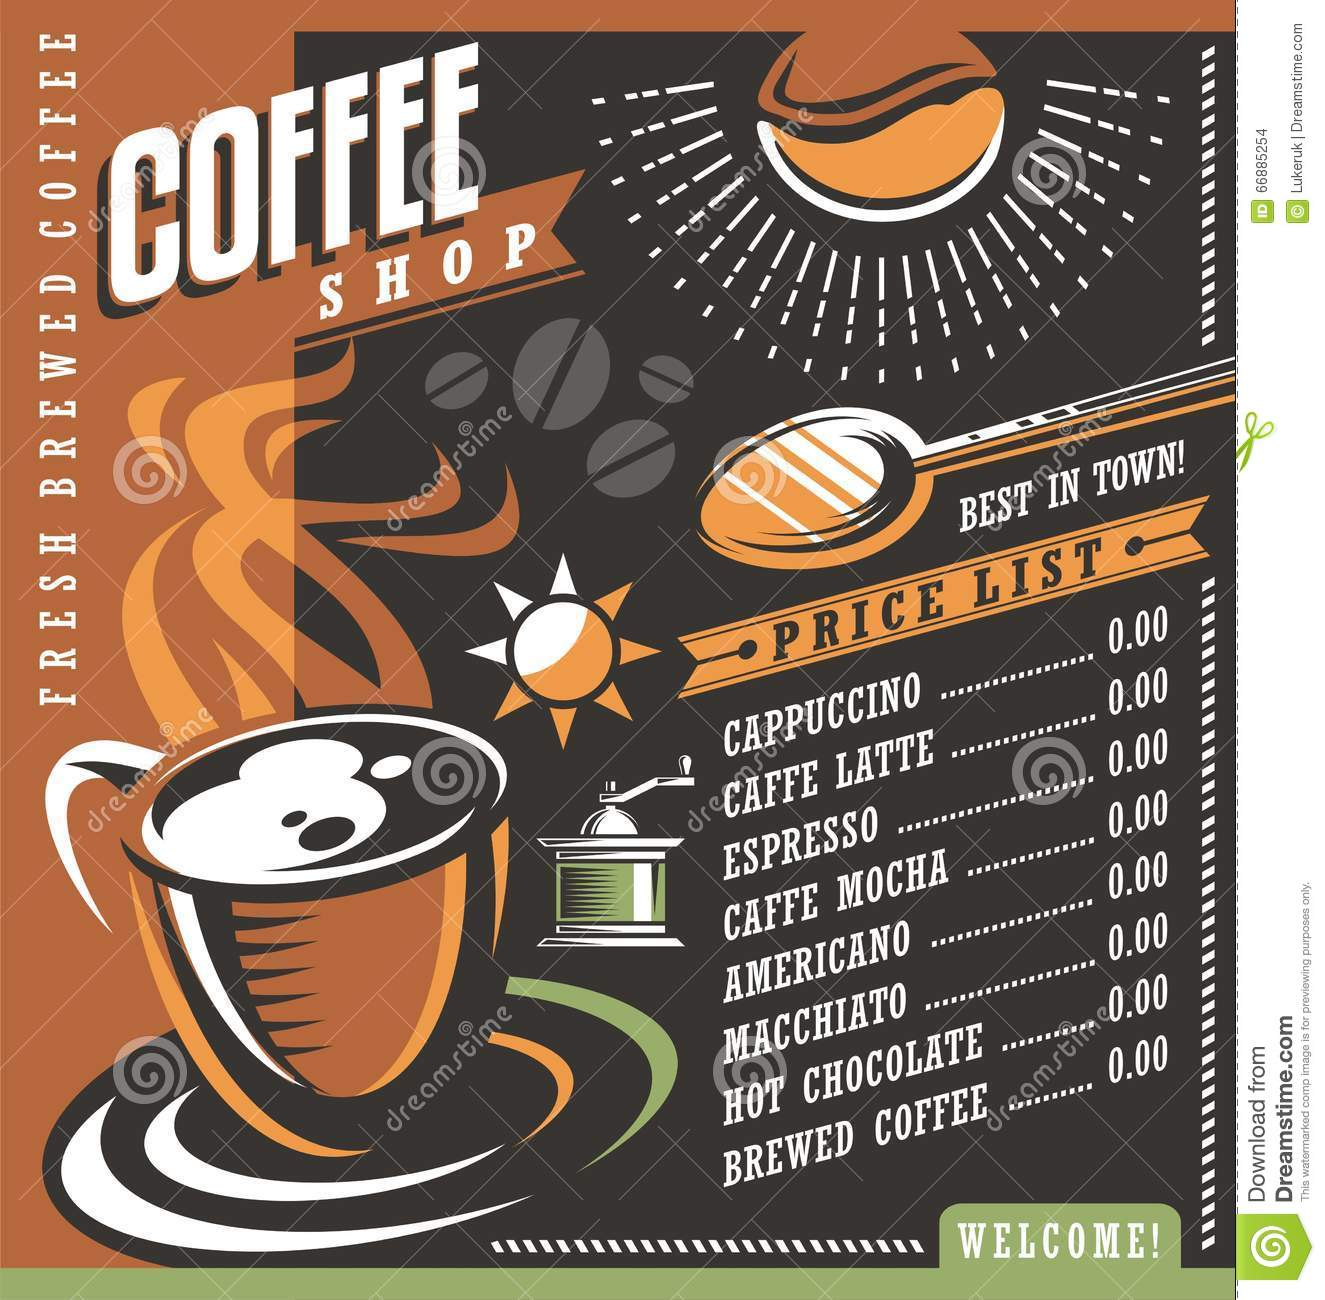 Menu price list for coffee beans cartoon vector for Coffee price list template